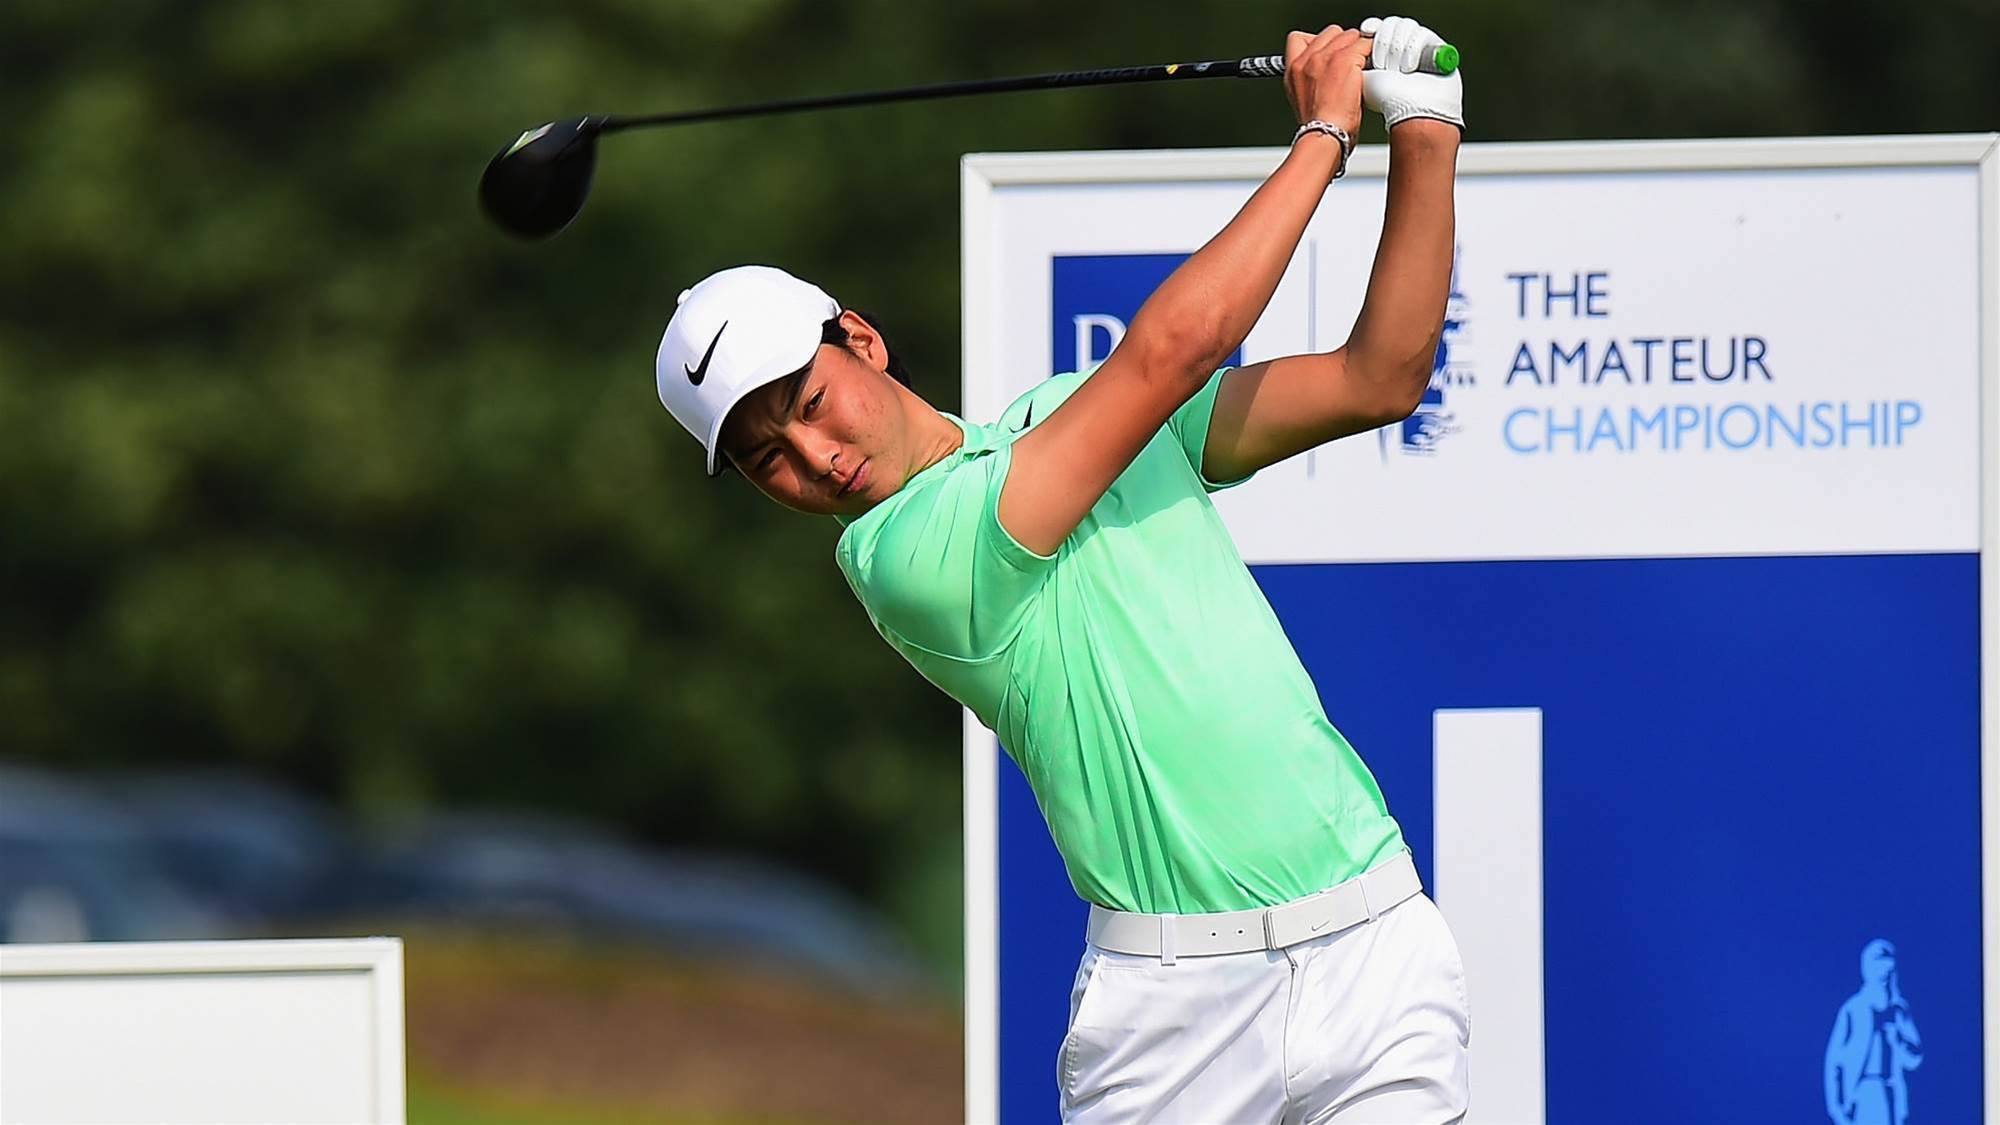 Four Aussies win through at The Amateur